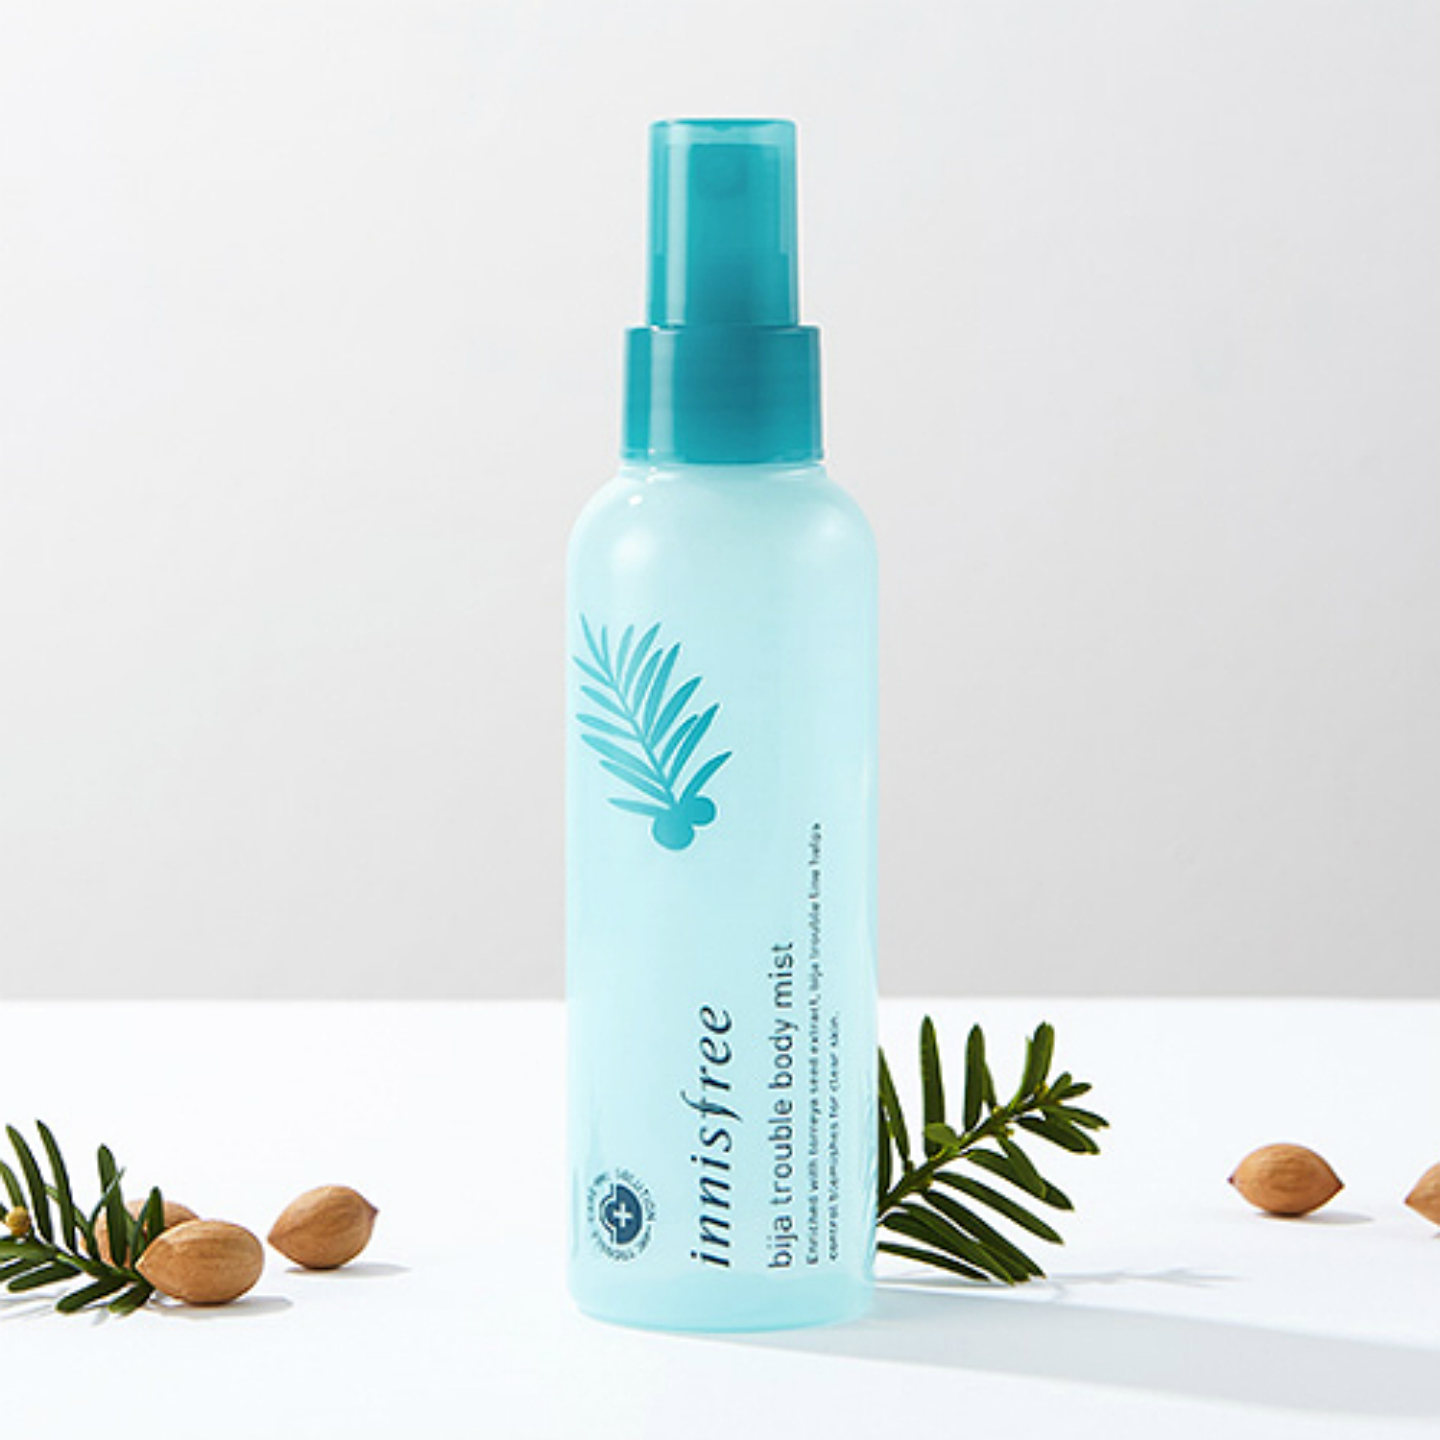 INNISFREE Bija Trouble Body Mist